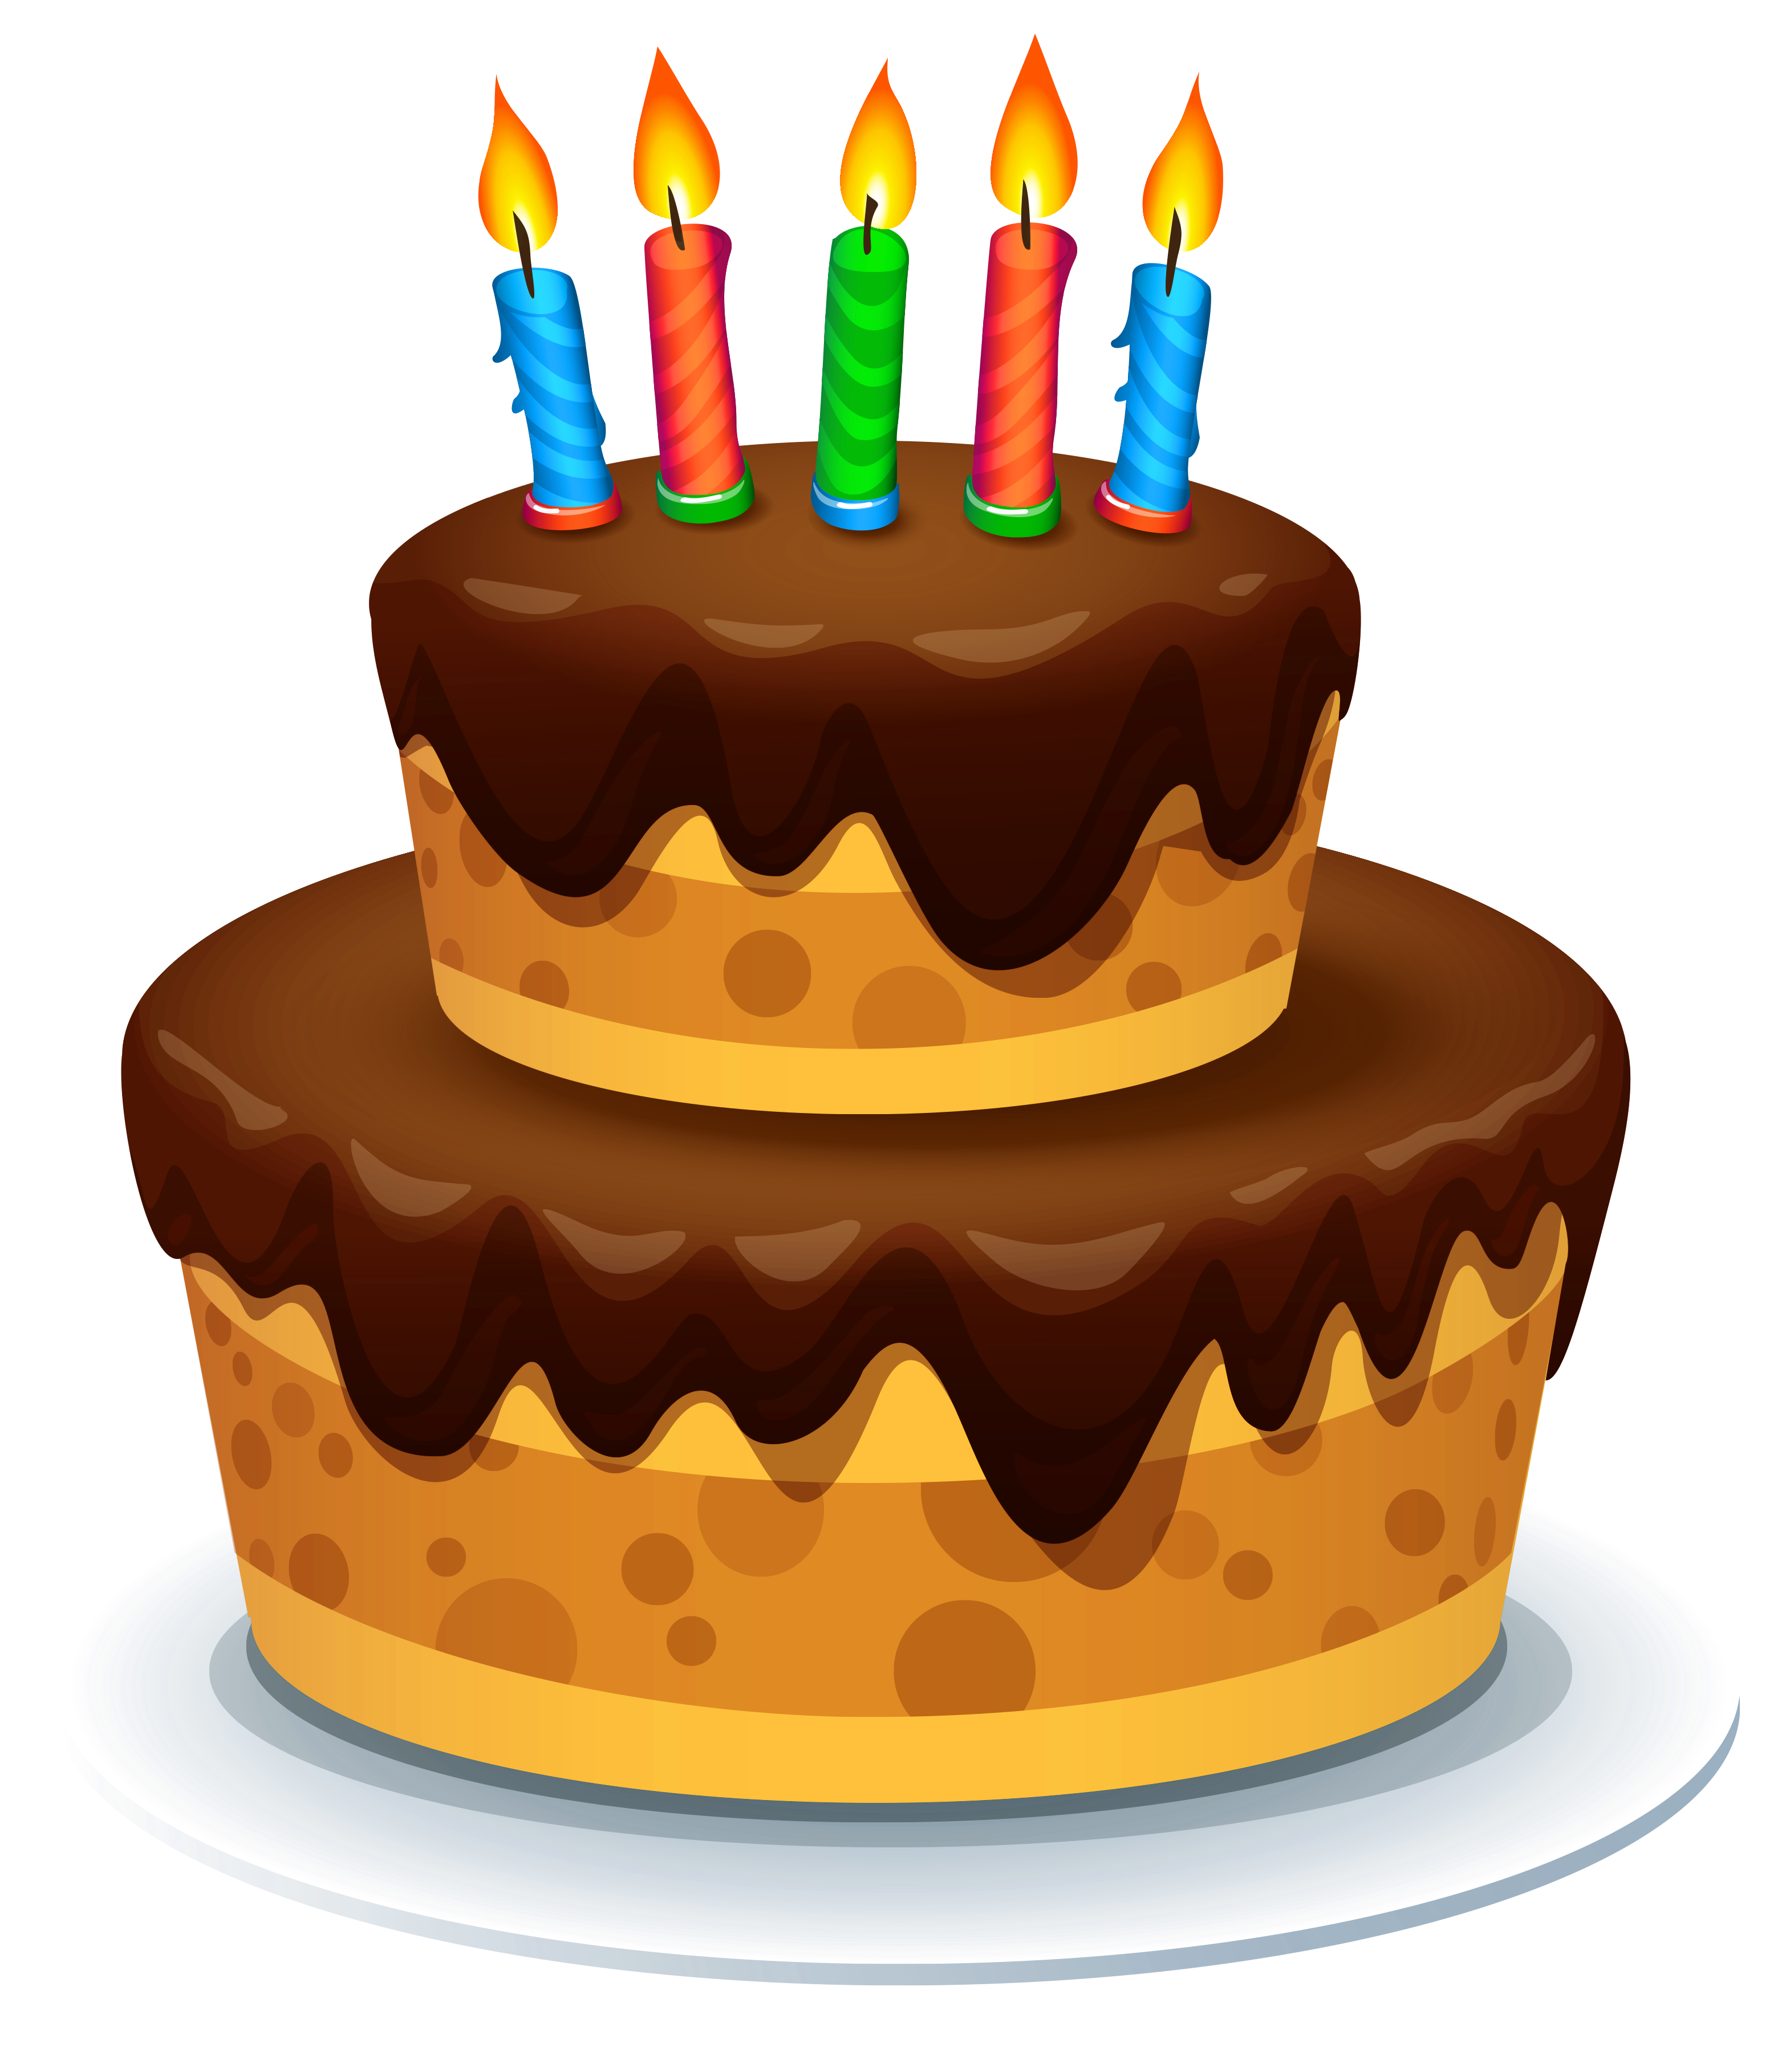 With candles png image. Clipart cake